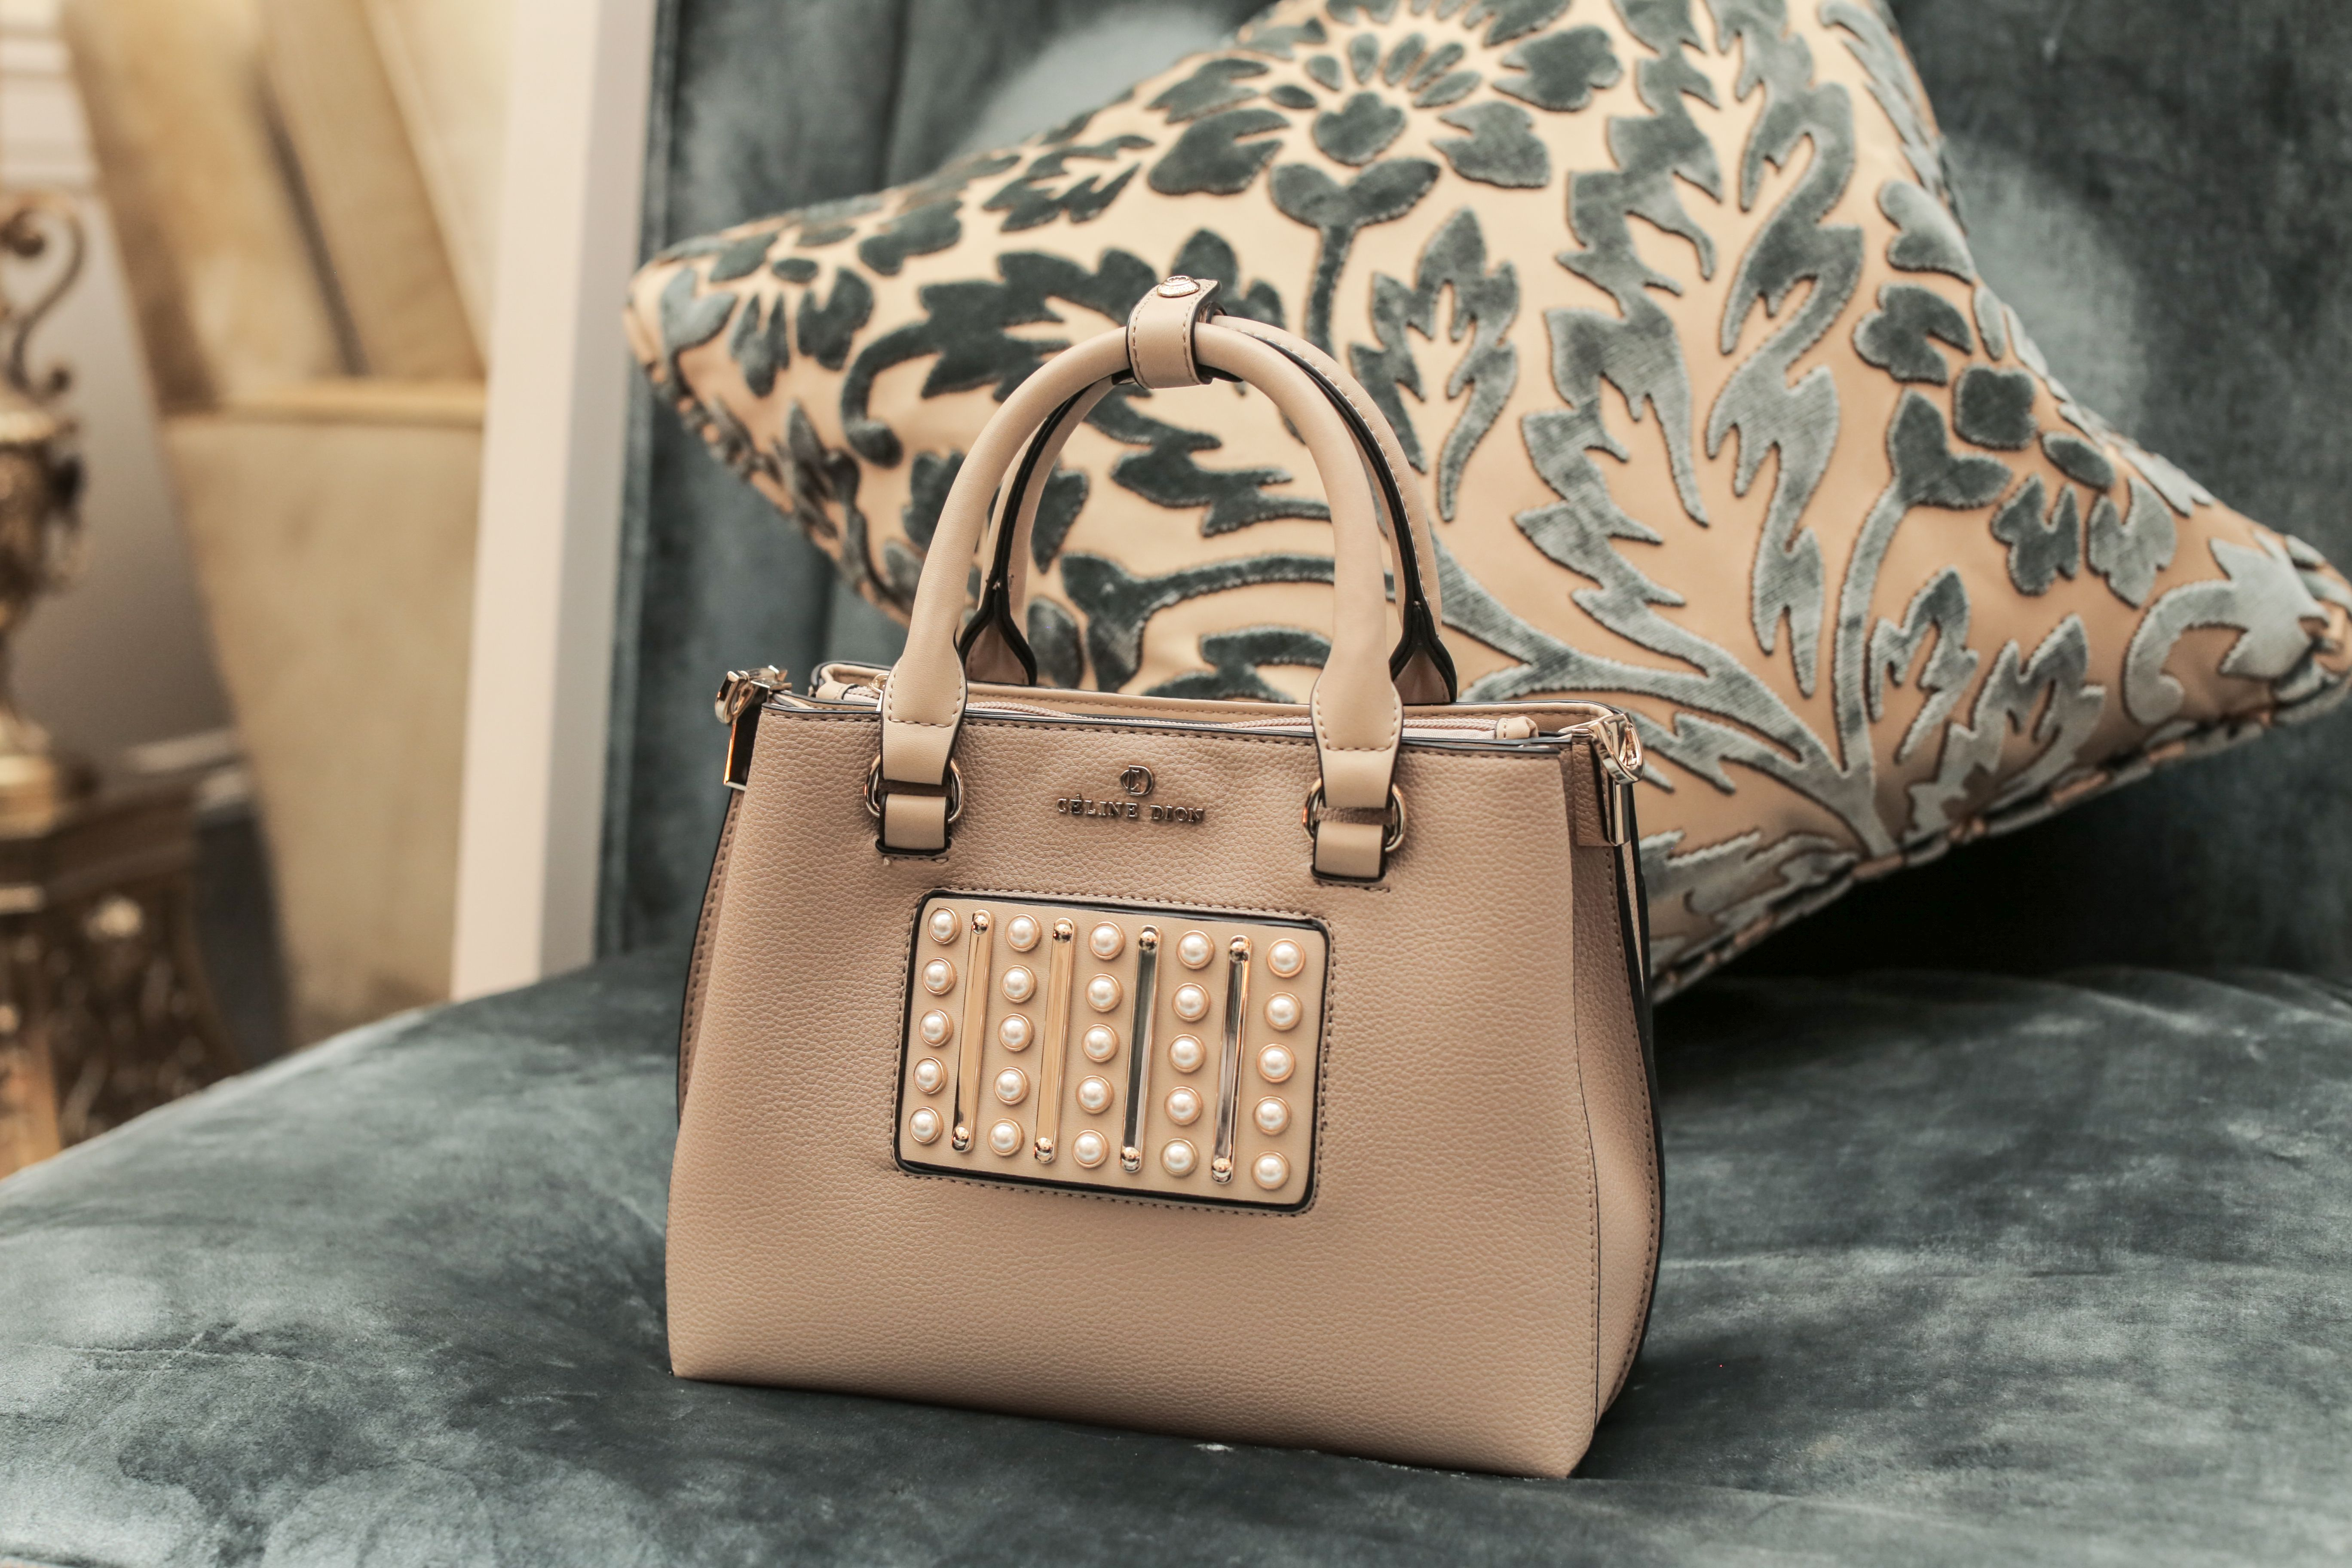 705e28420f2b MAESTRO - Satchel with front metal vertical bar decoration   Céline Dion  Collection